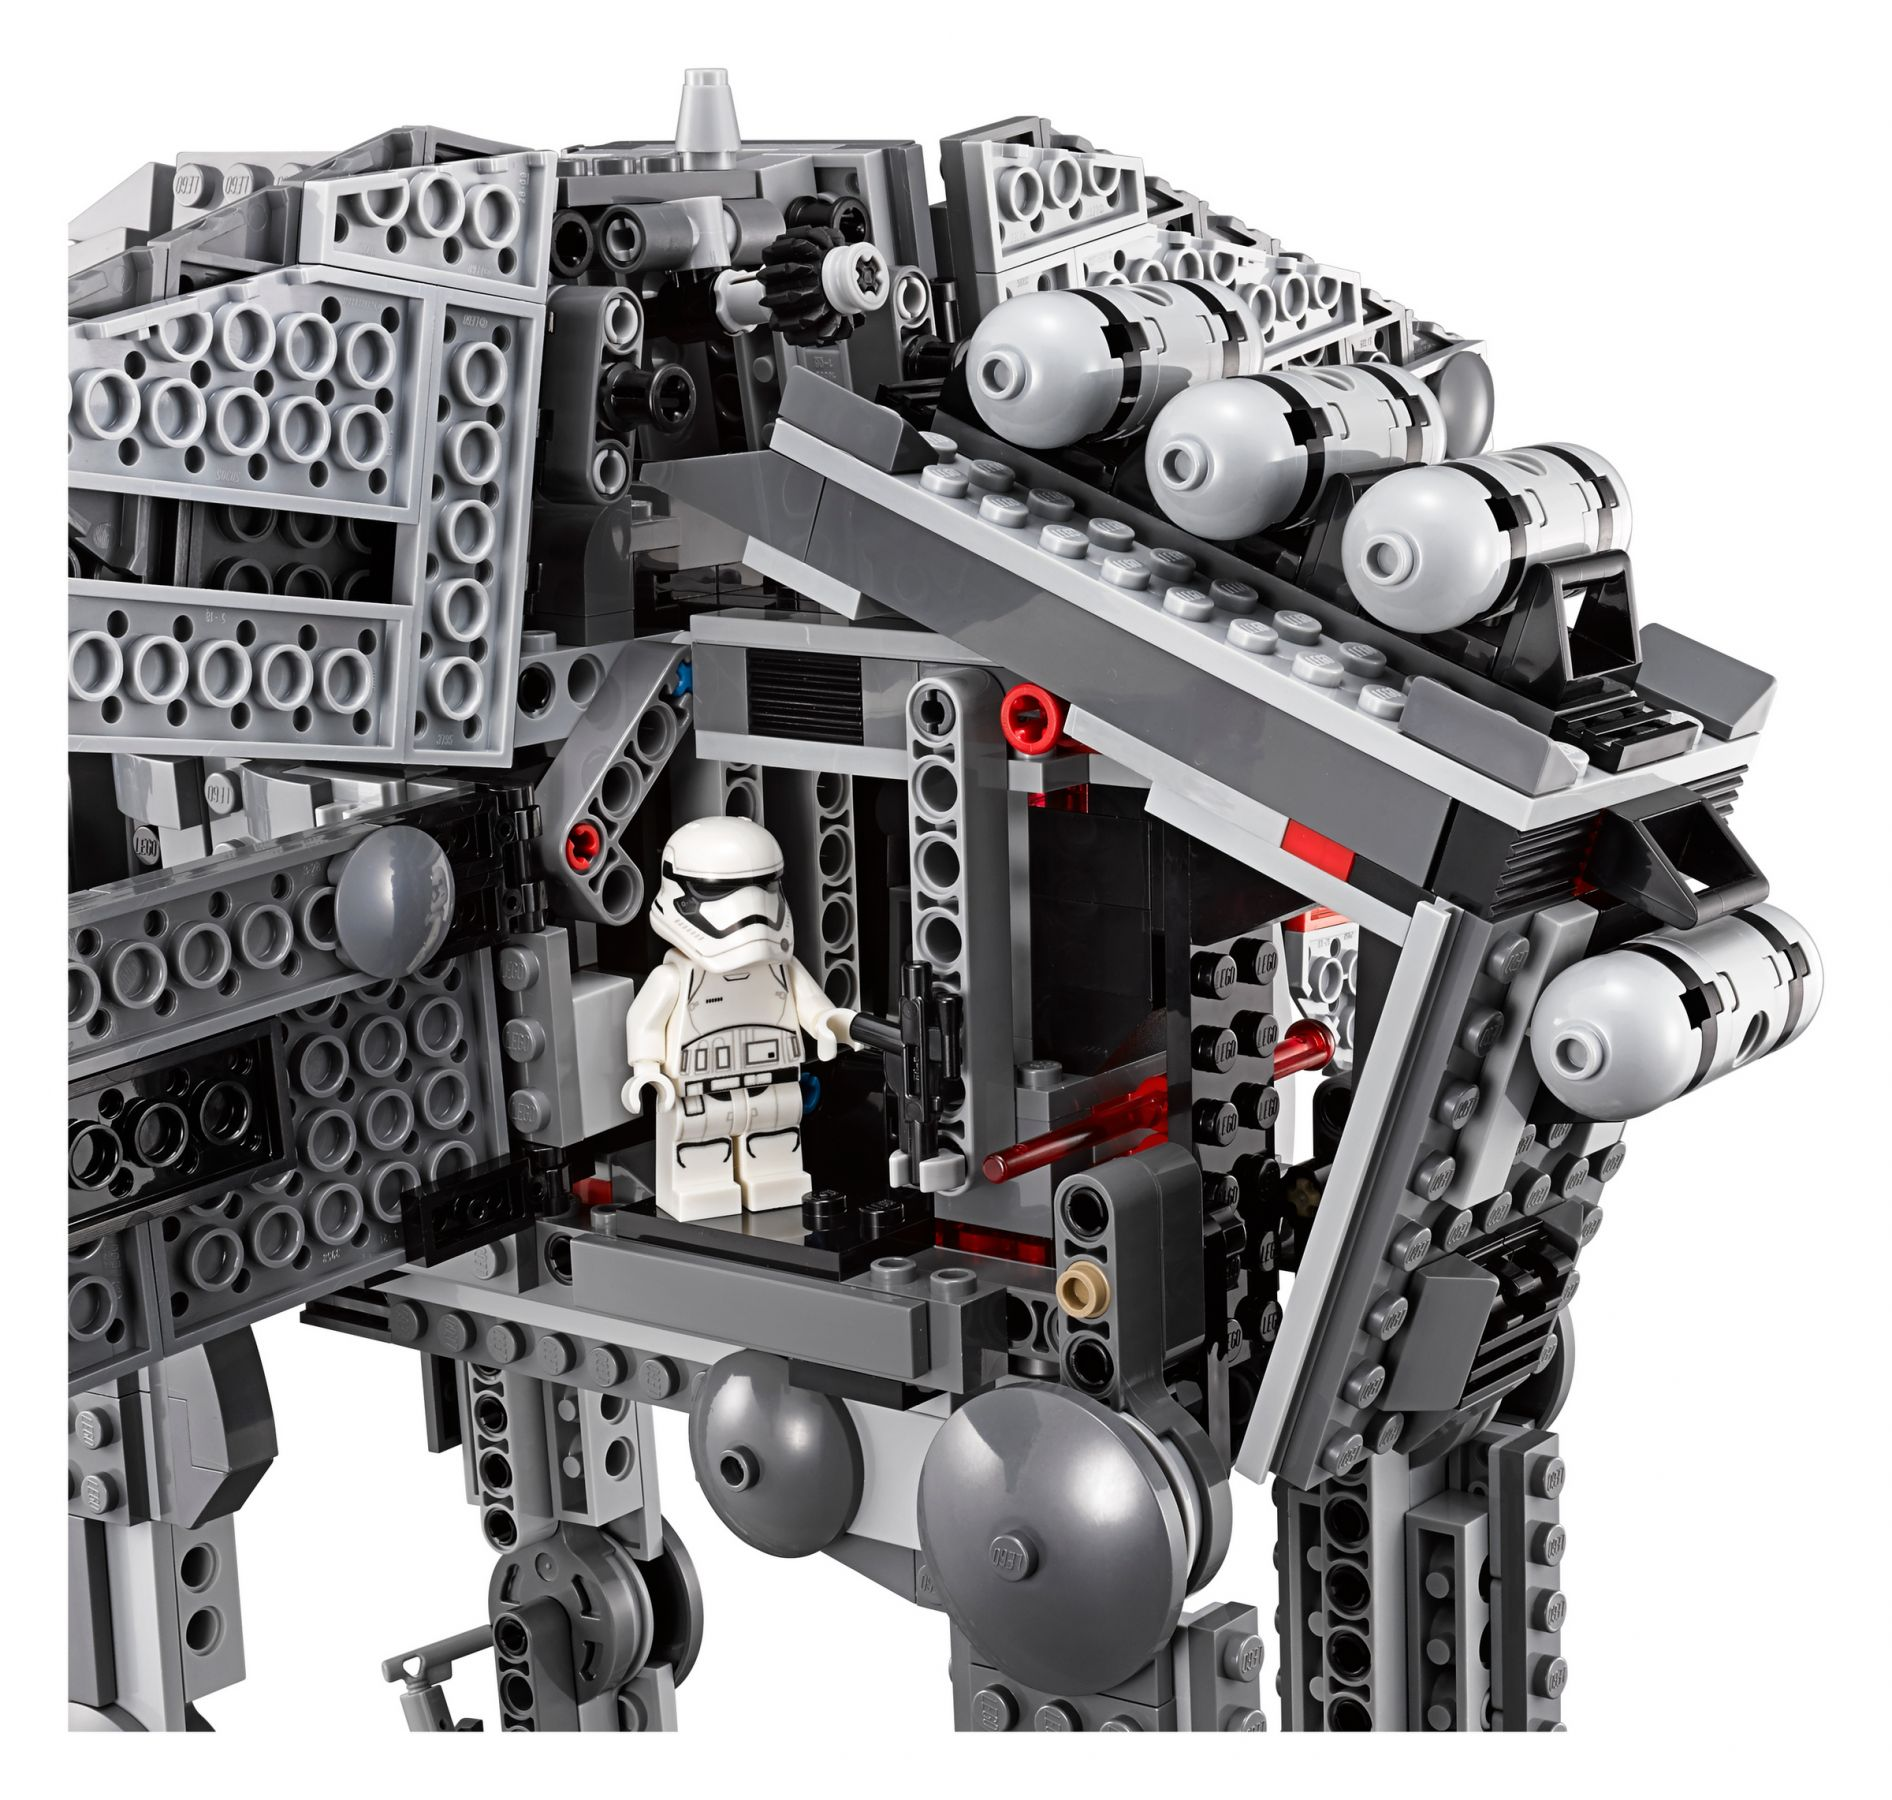 LEGO Star Wars 75189 First Order Heavy Assault Walker™ LEGO_75189_alt3.jpg